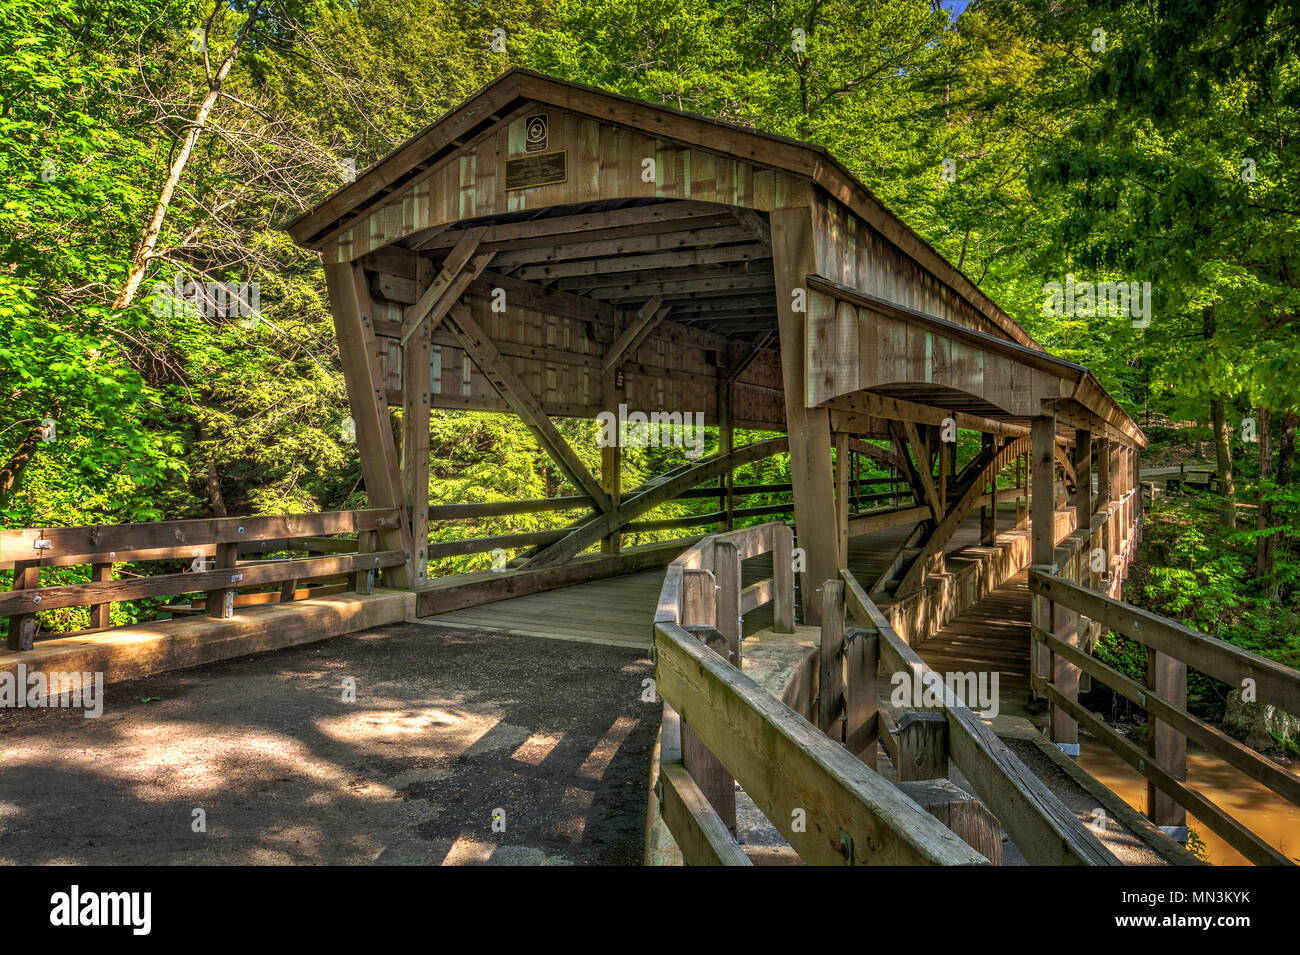 The covered bridge at Lanterman's Mill in Mill Creek Park in Youngstown Ohio. Built in 1989. - Stock Image